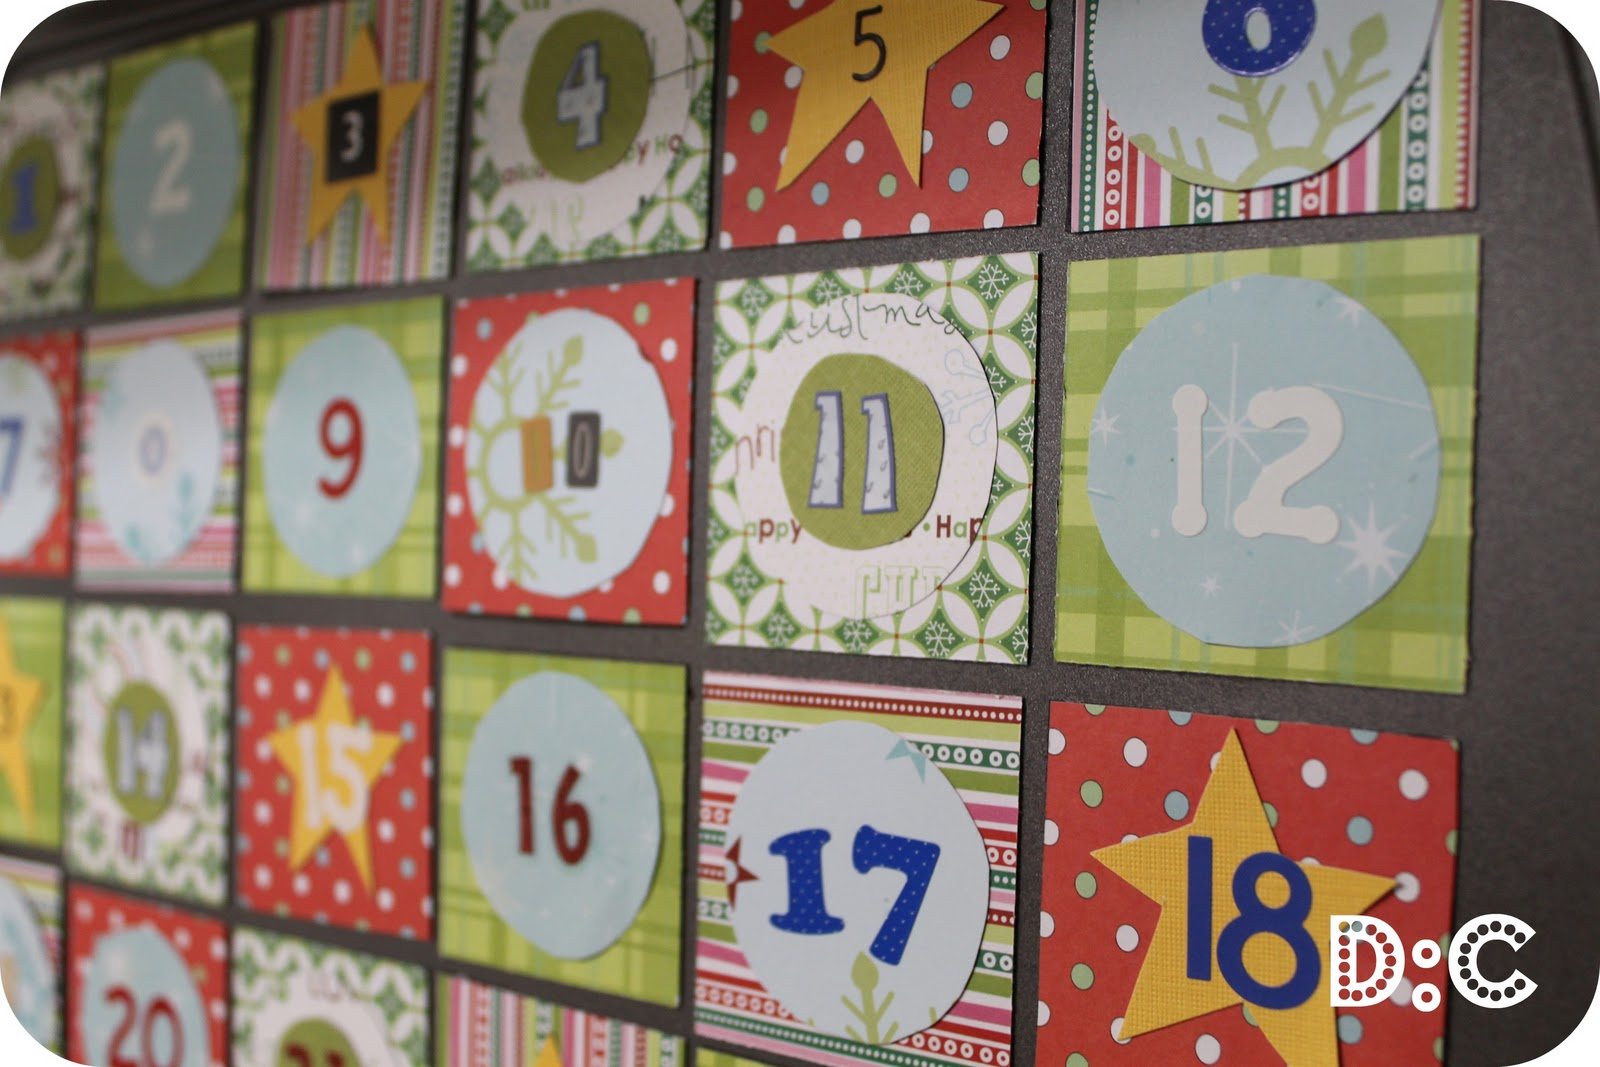 The Advent symbols: the Calendar and the Crown, according to tradition, explained by Bags Free